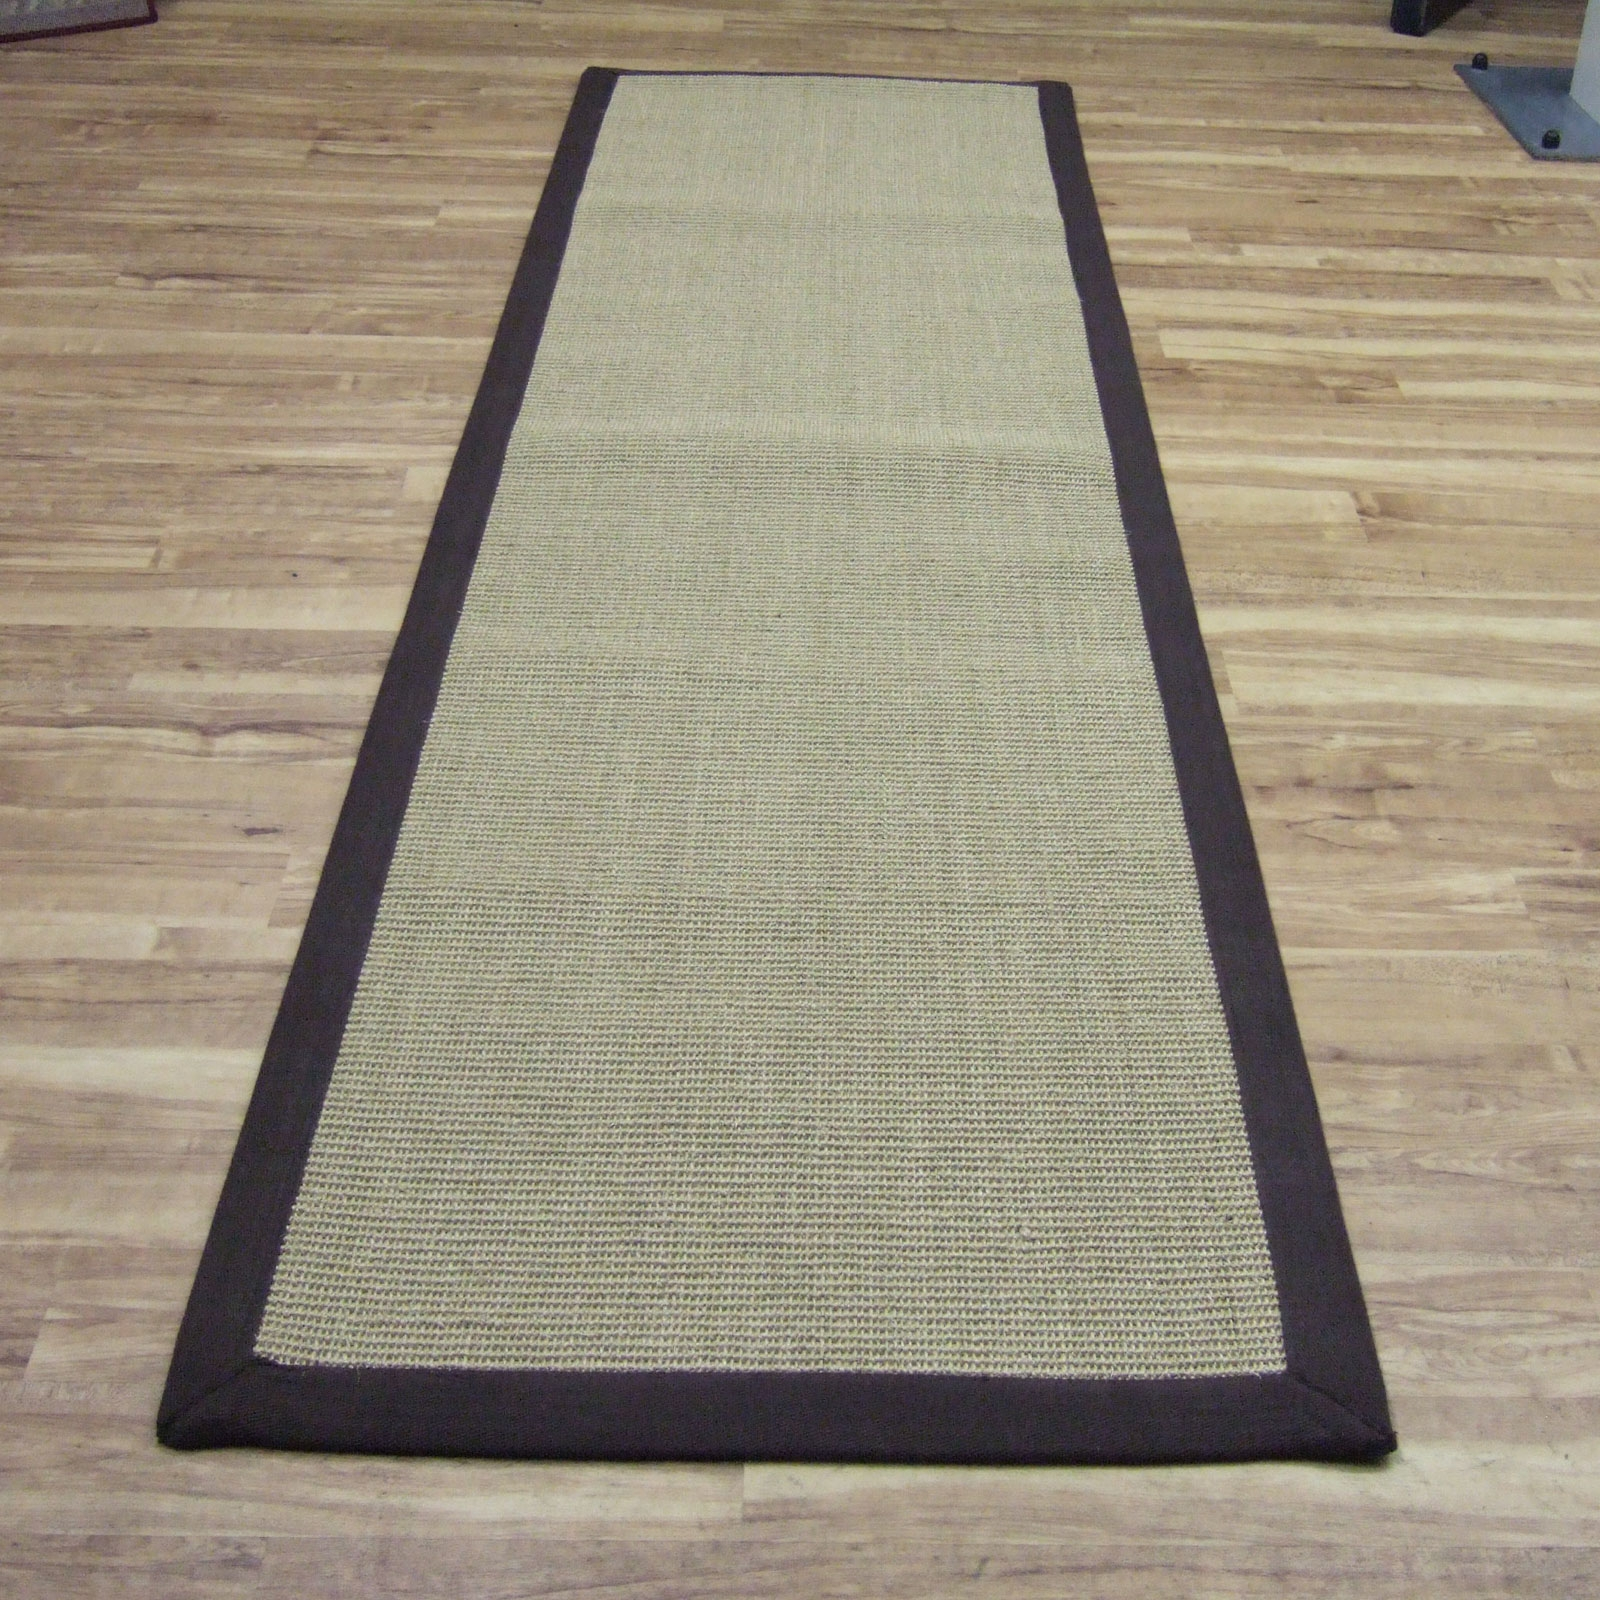 Hall Rugs Uk Roselawnlutheran Intended For Black Rug Runners For Hallways (#11 of 20)